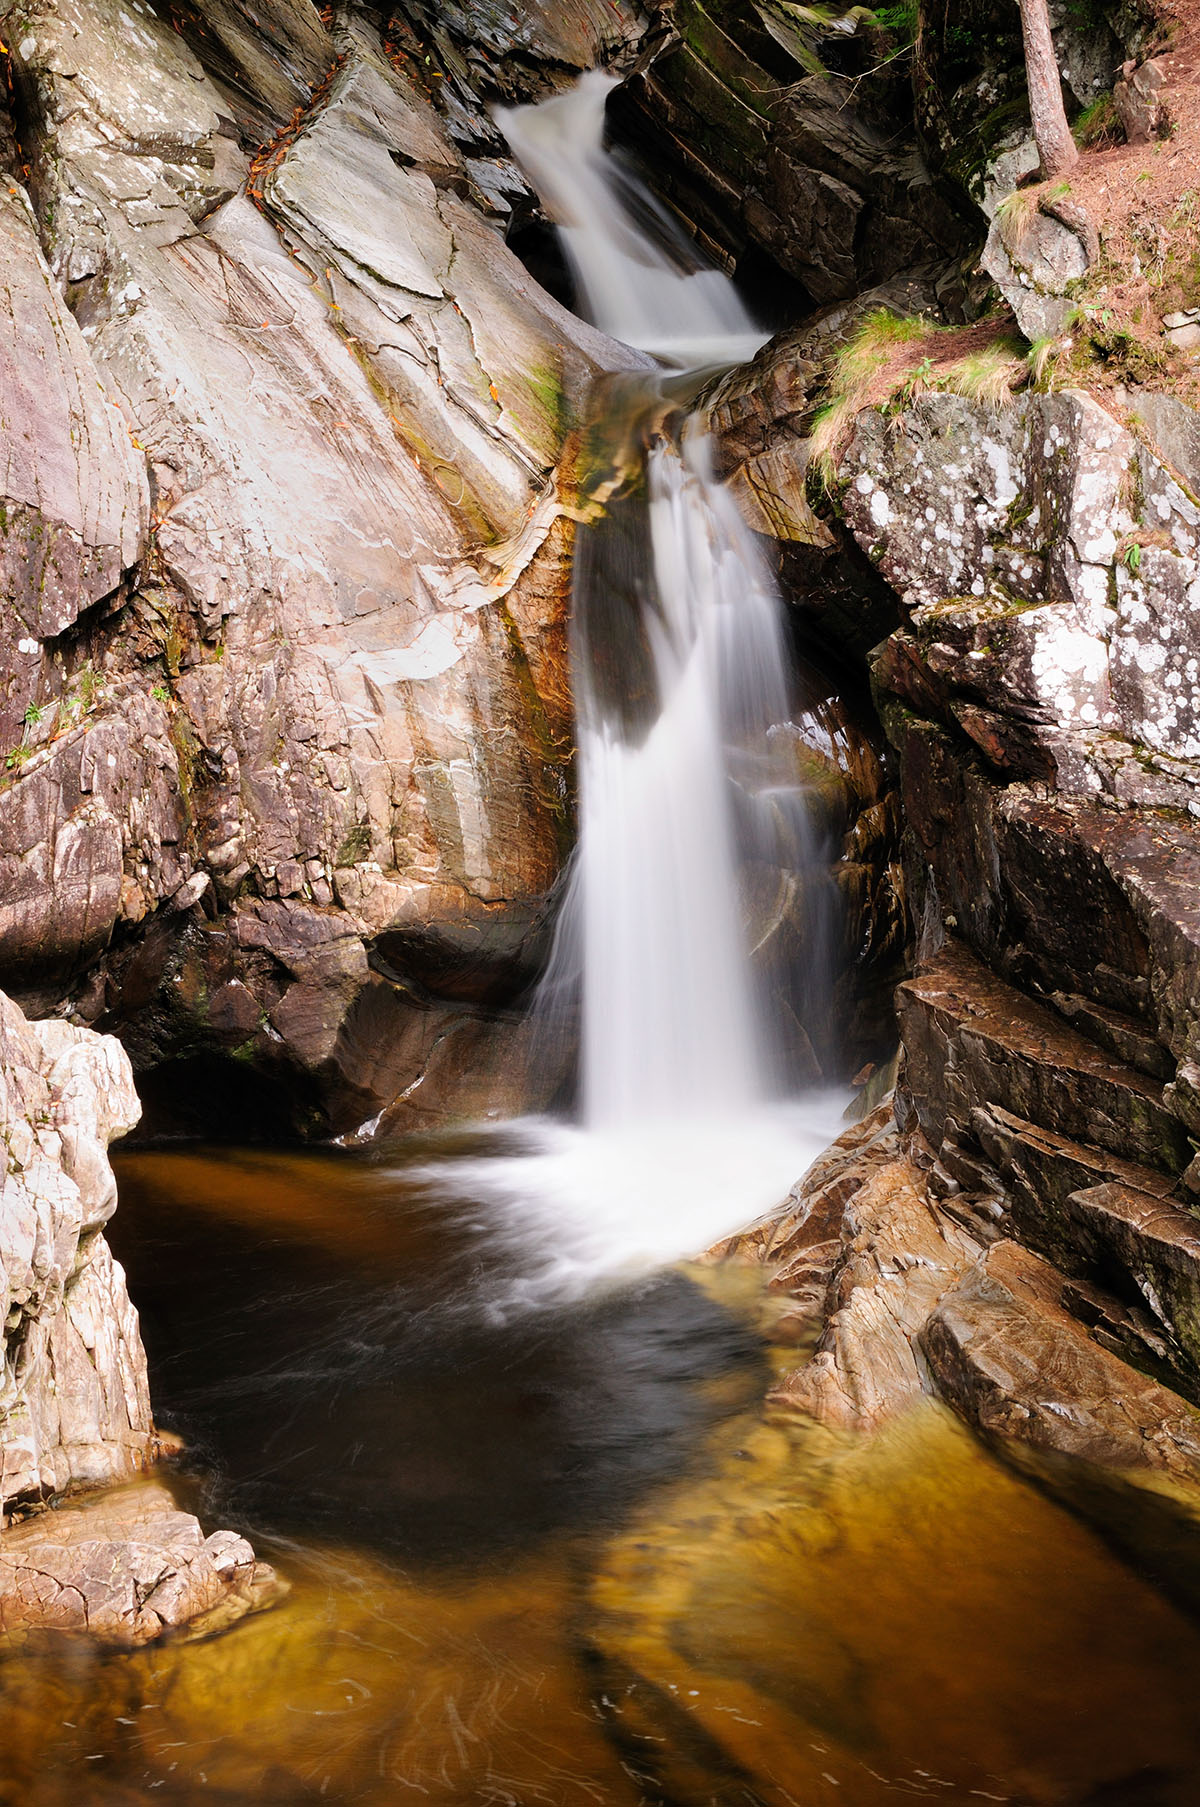 Waterfall photographed in slow motion, in a small gorge with smooth grey rocks on either side and dark pool at the base